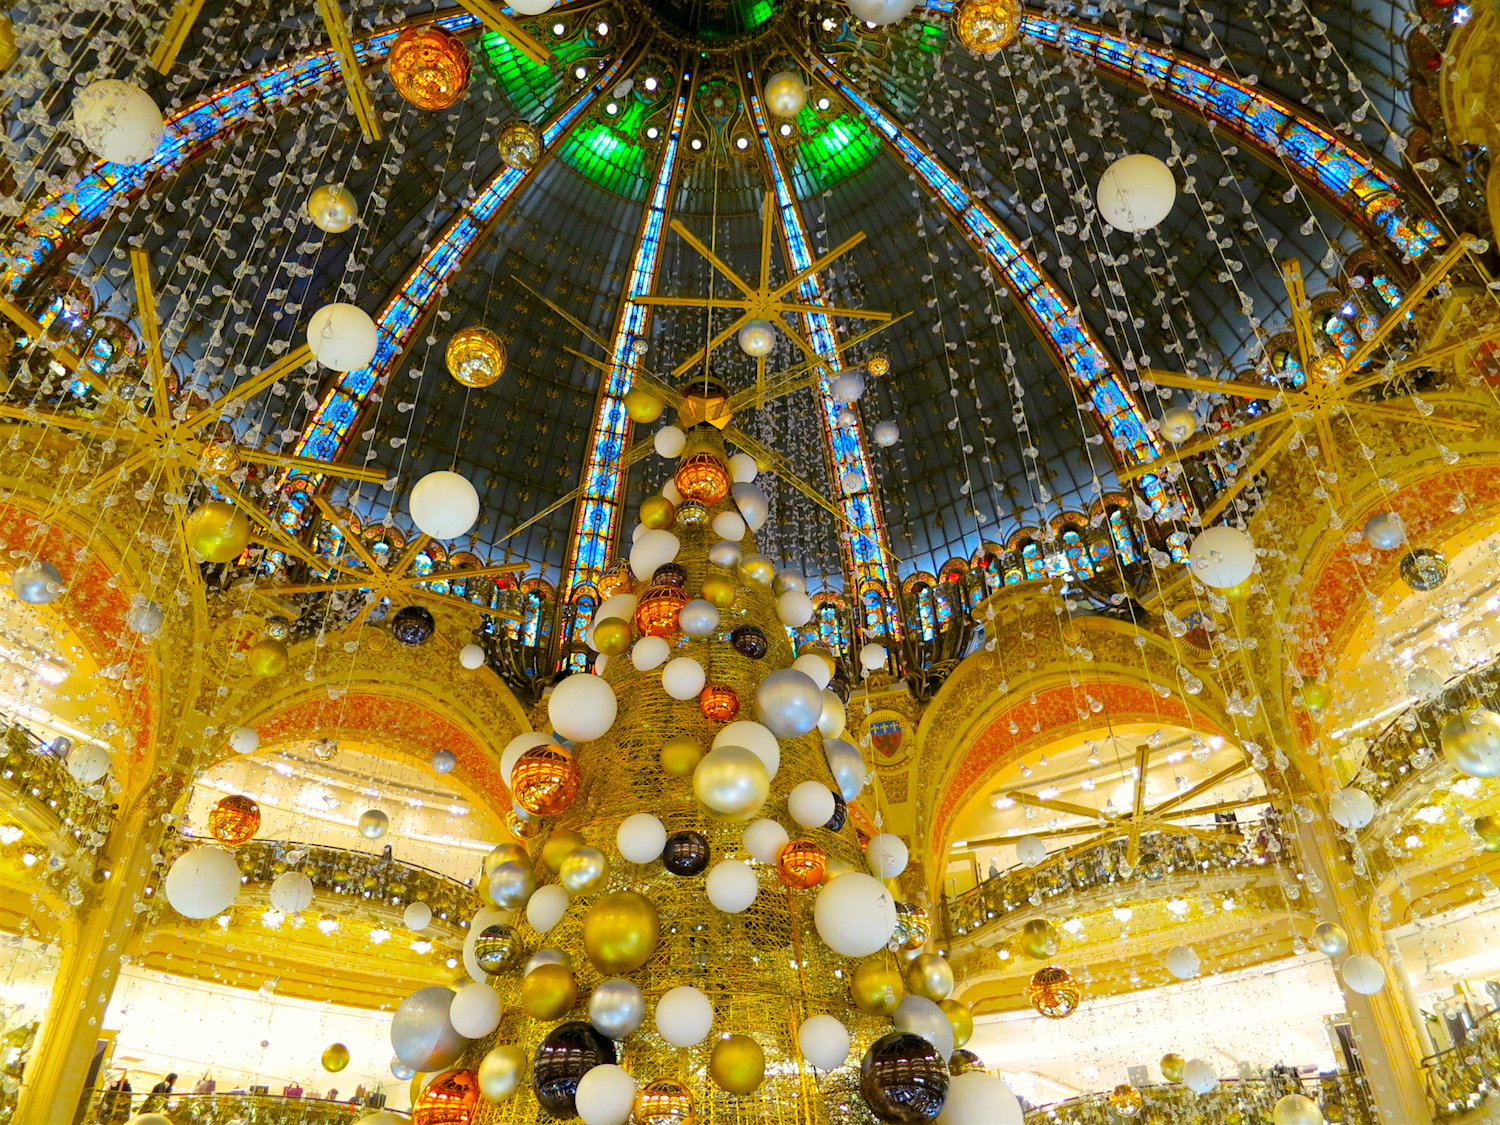 Christmas 2015 Galeries Lafayette Paris Photo by Sylvia Davis